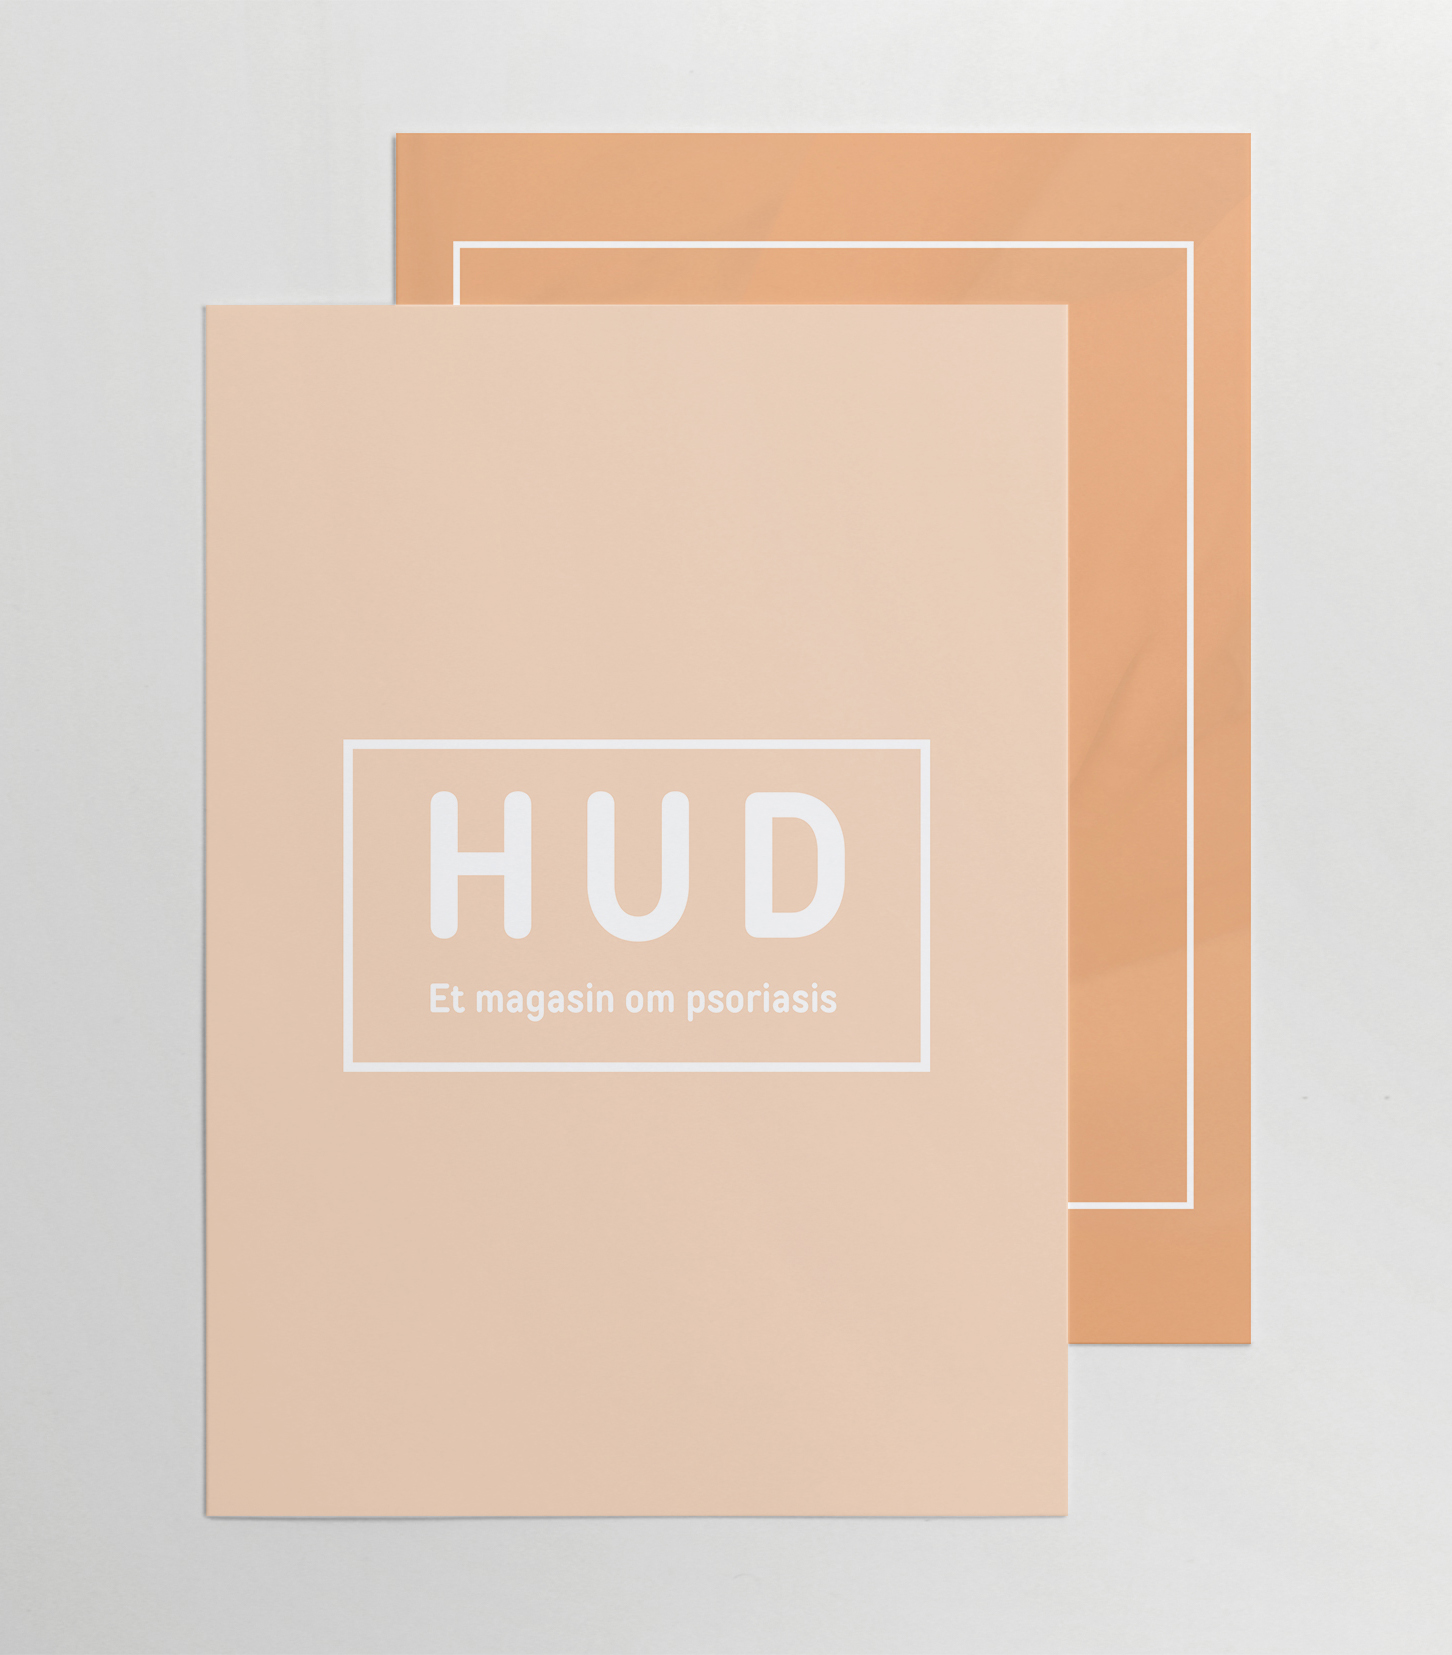 Hud magasin om psoriasis layout og design